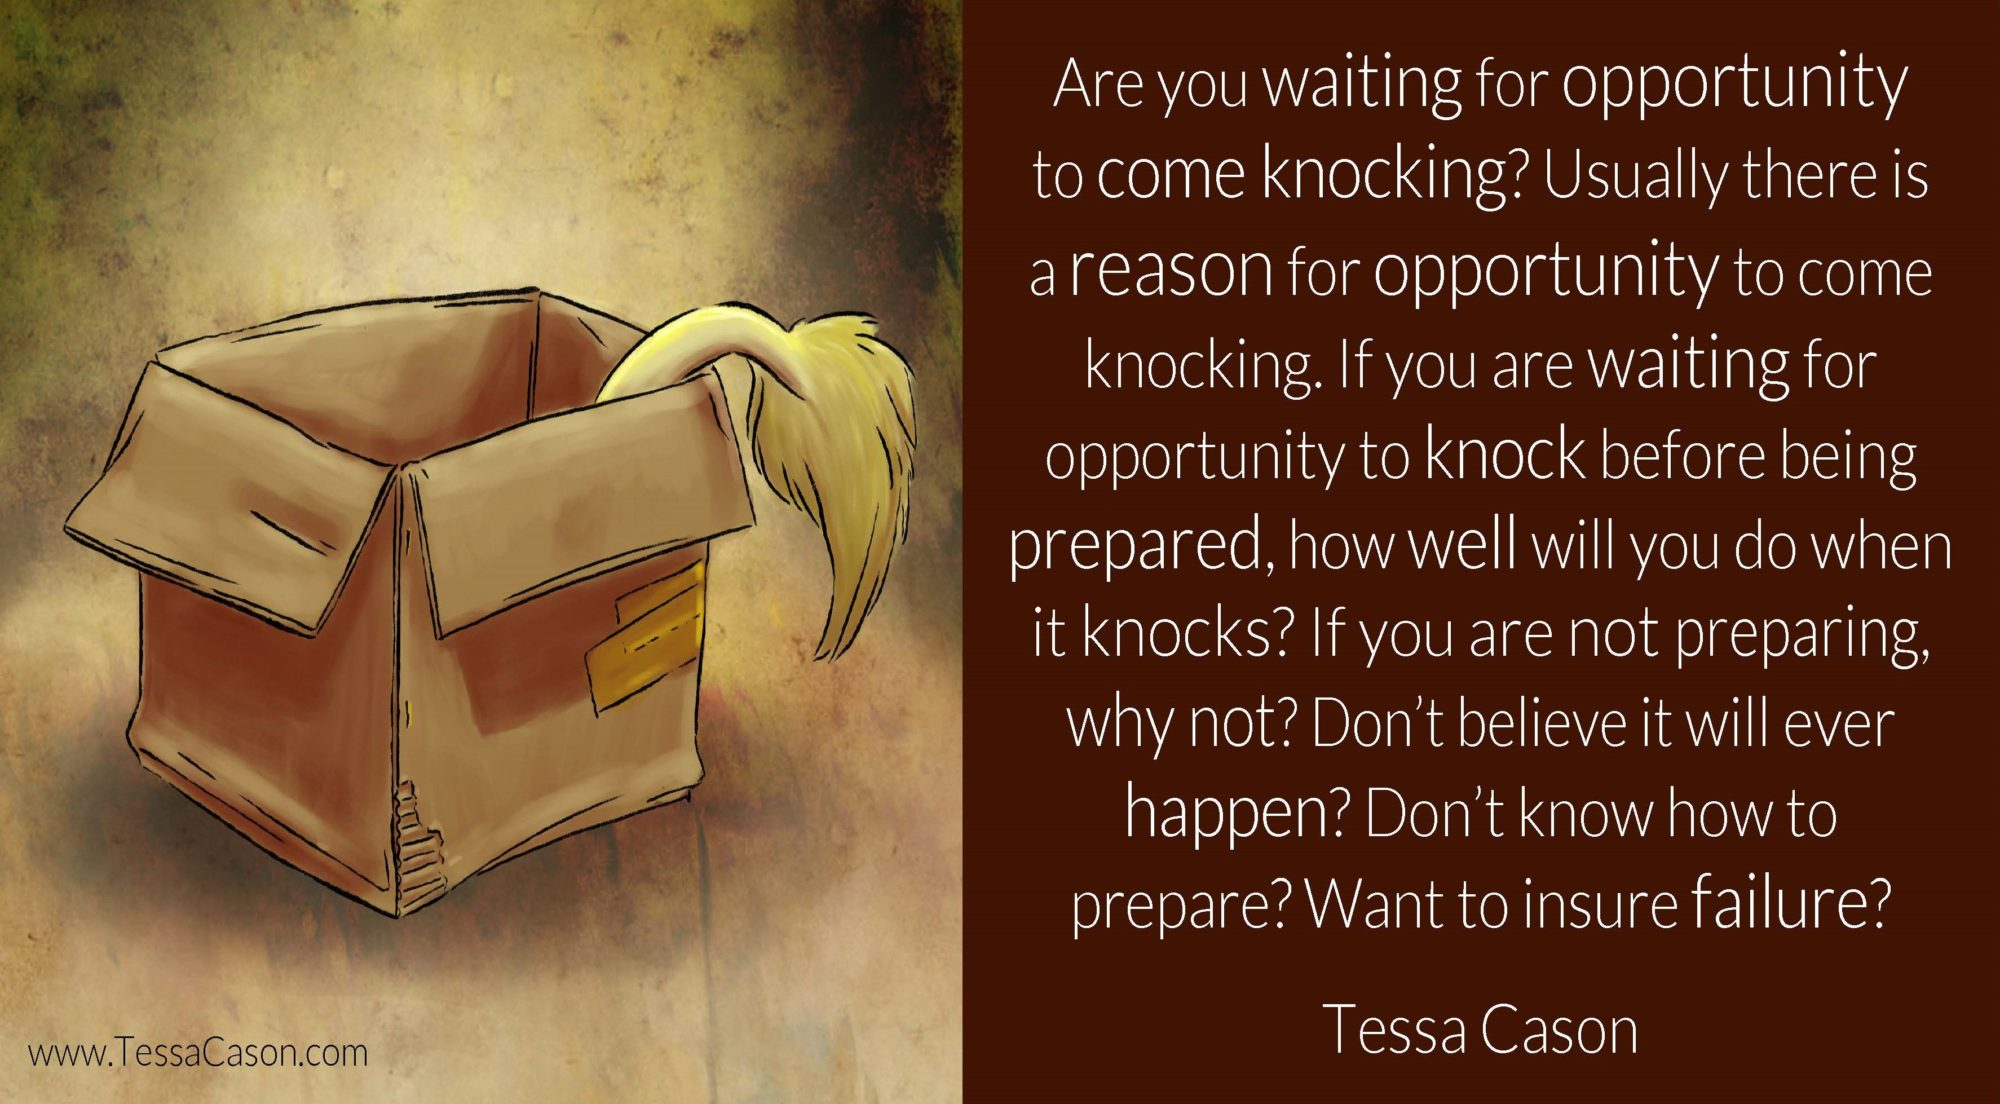 Are You Waiting for Opportunity to come Knocking